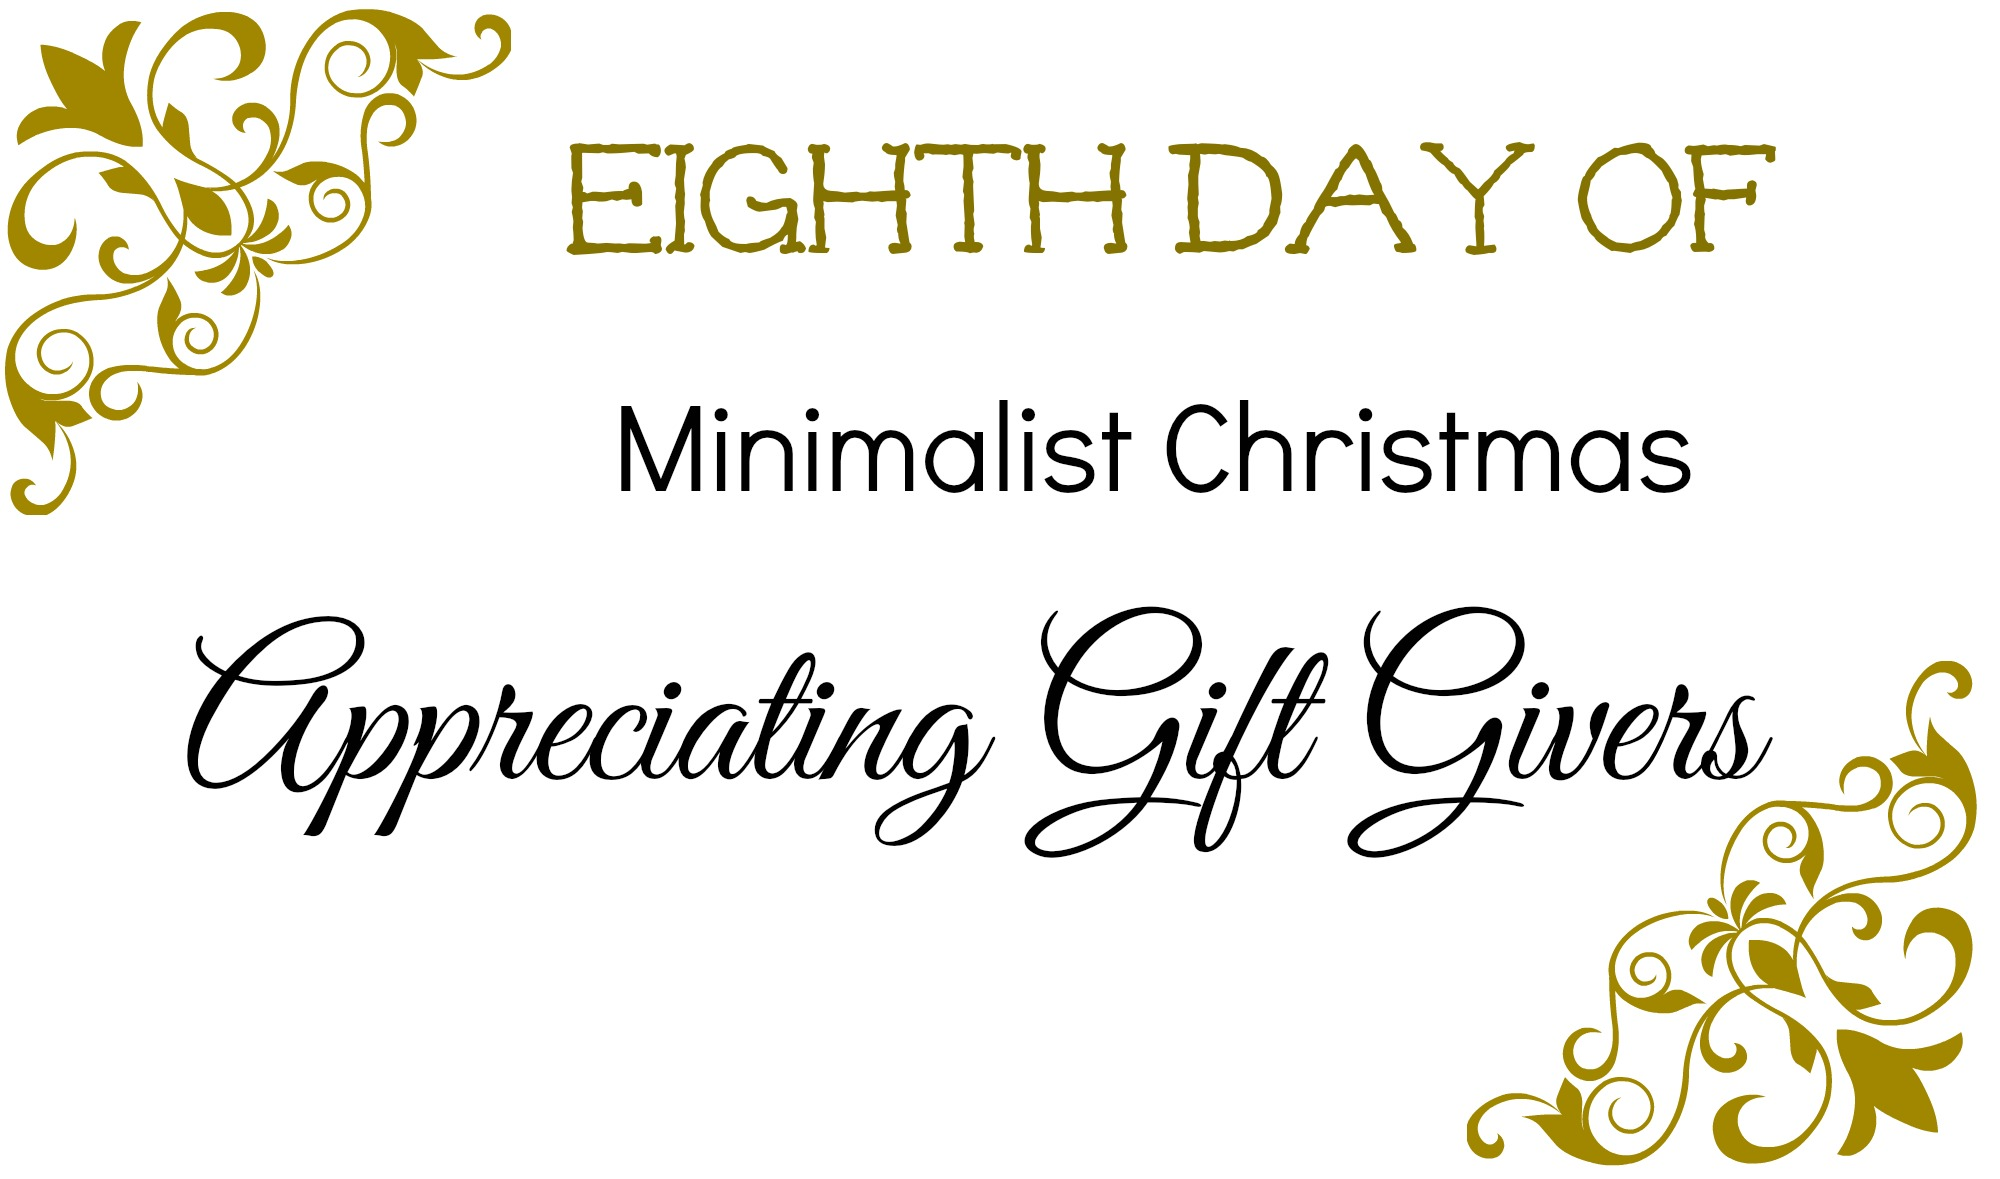 Eighth day of minimalist christmas appreciating gift givers simply 8thday negle Choice Image